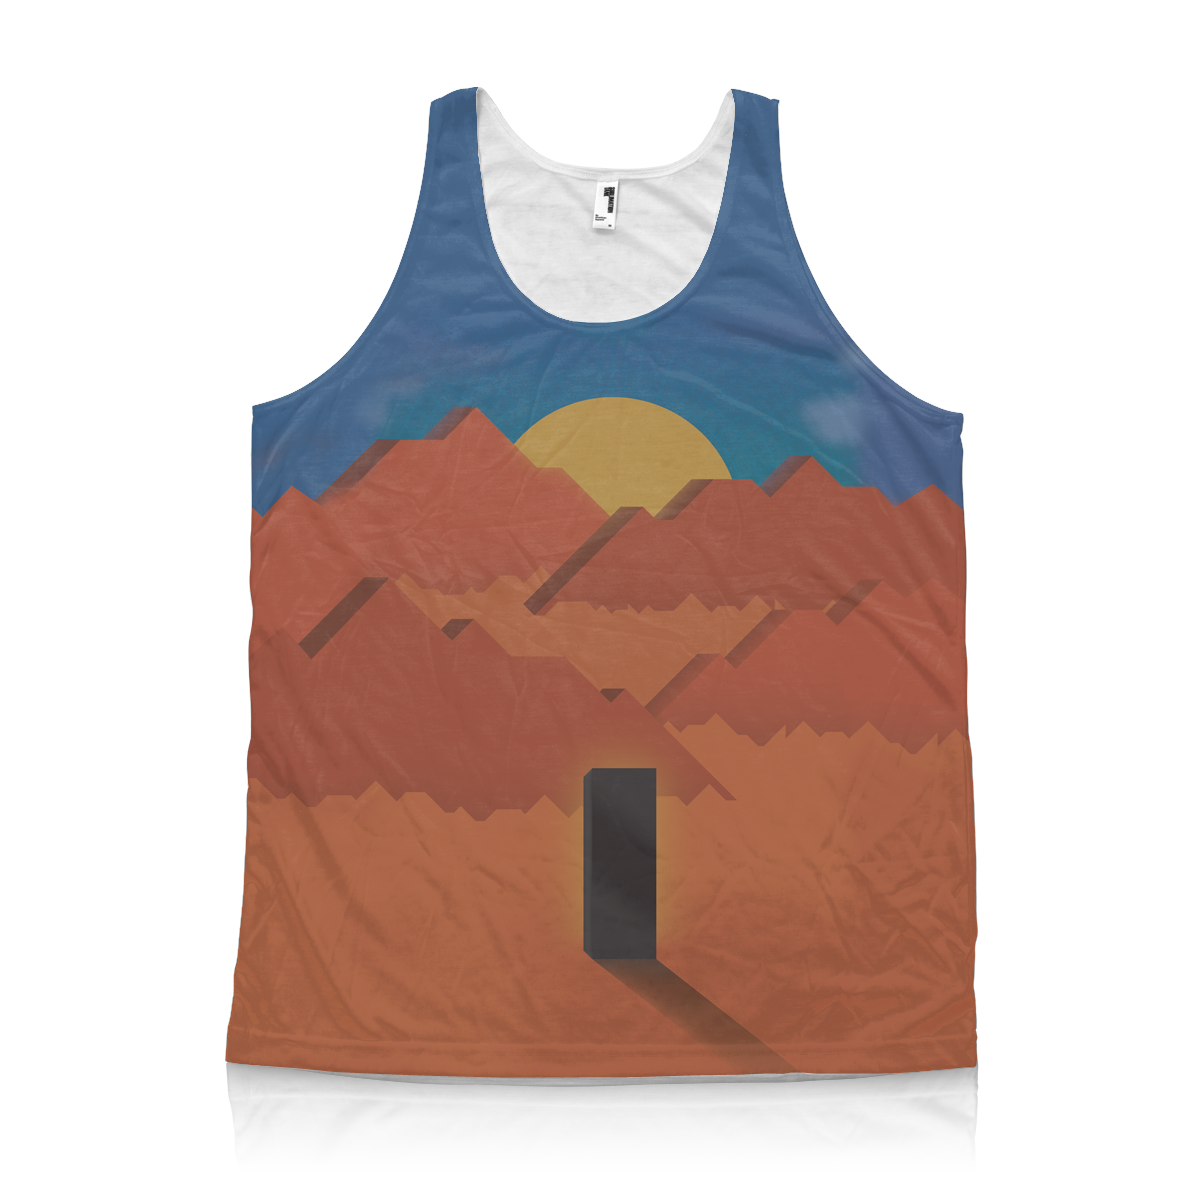 All-Over Printed American Apparel Tank Top